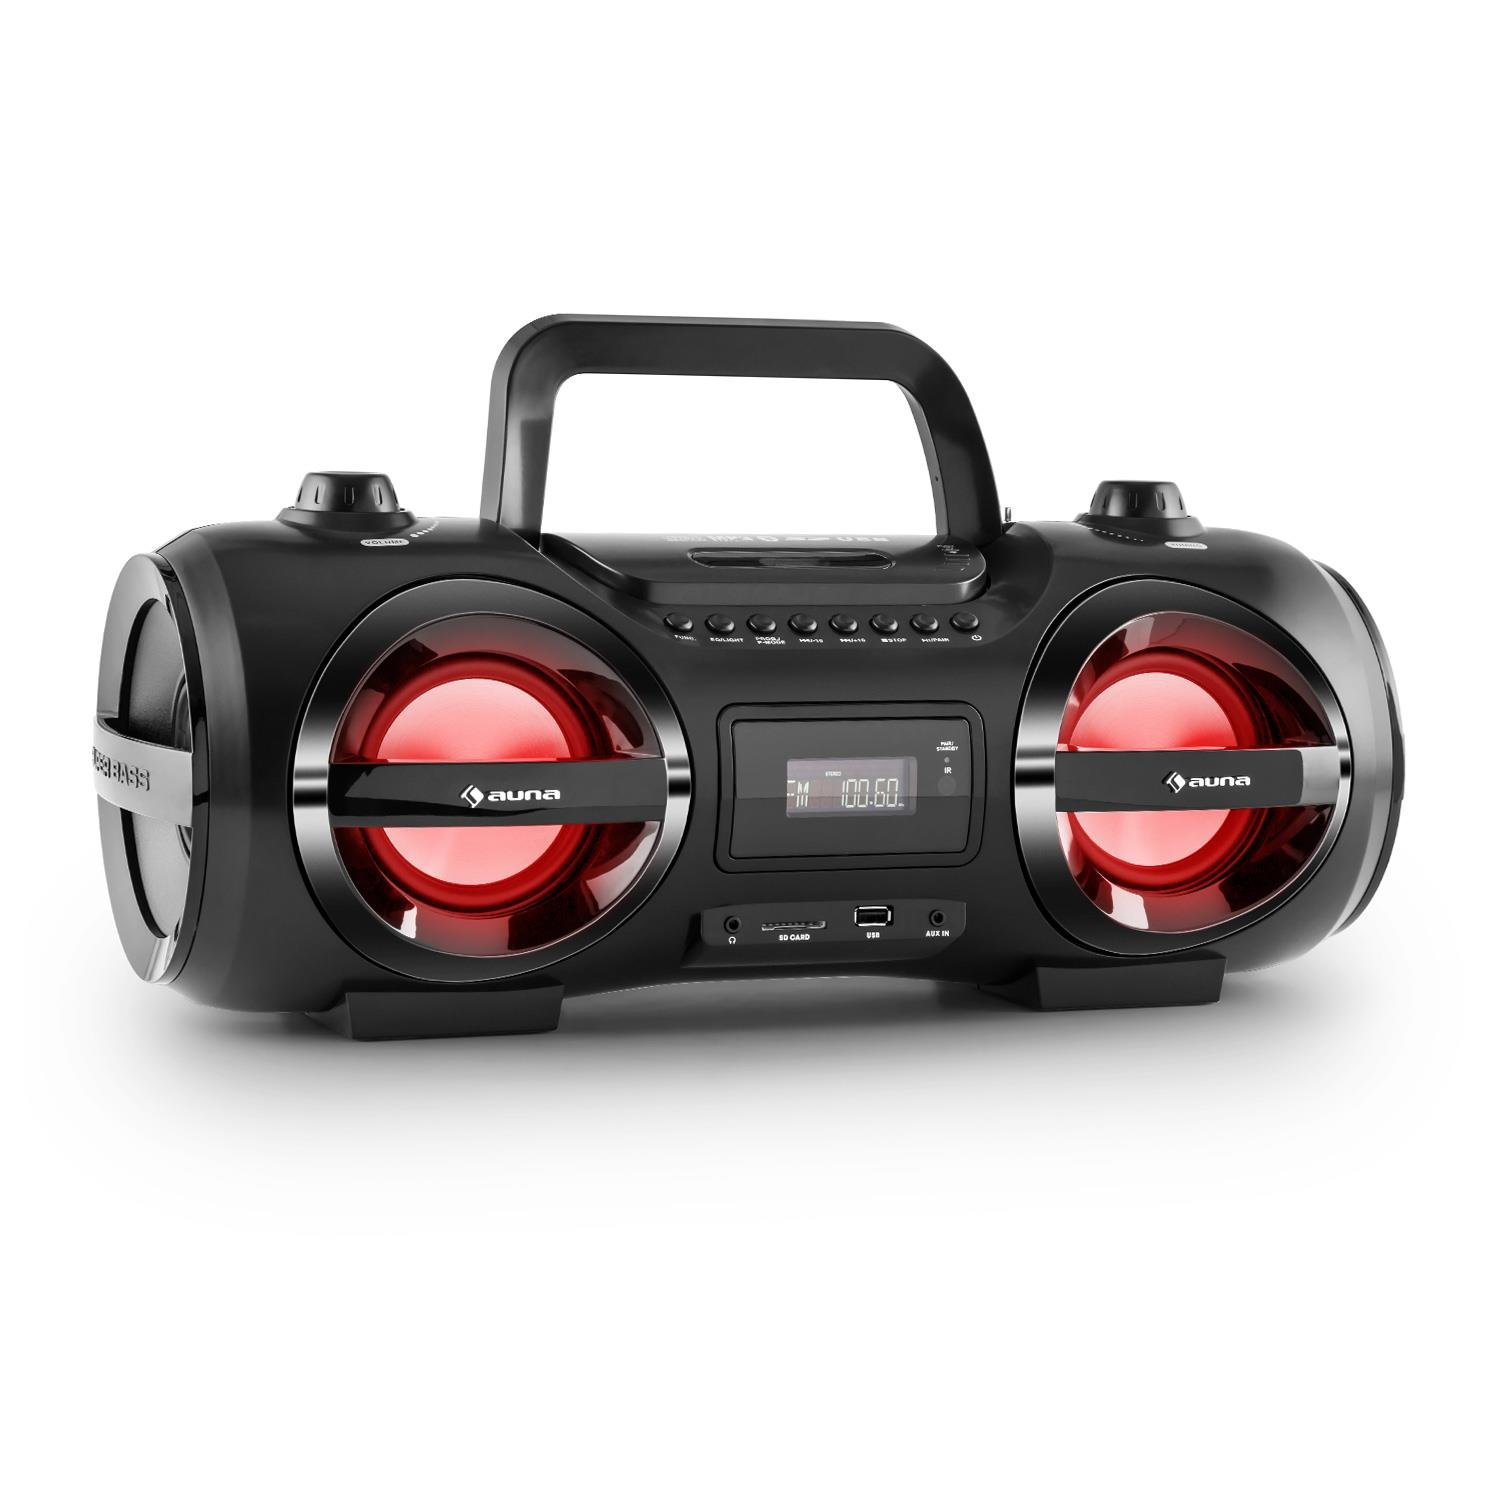 auna Soundblaster M Ghettoblaster Boombox (Bluetooth 3.0, CD-Player, MP3, USB-Port, LED-Effektbeleuchtung) schwarz